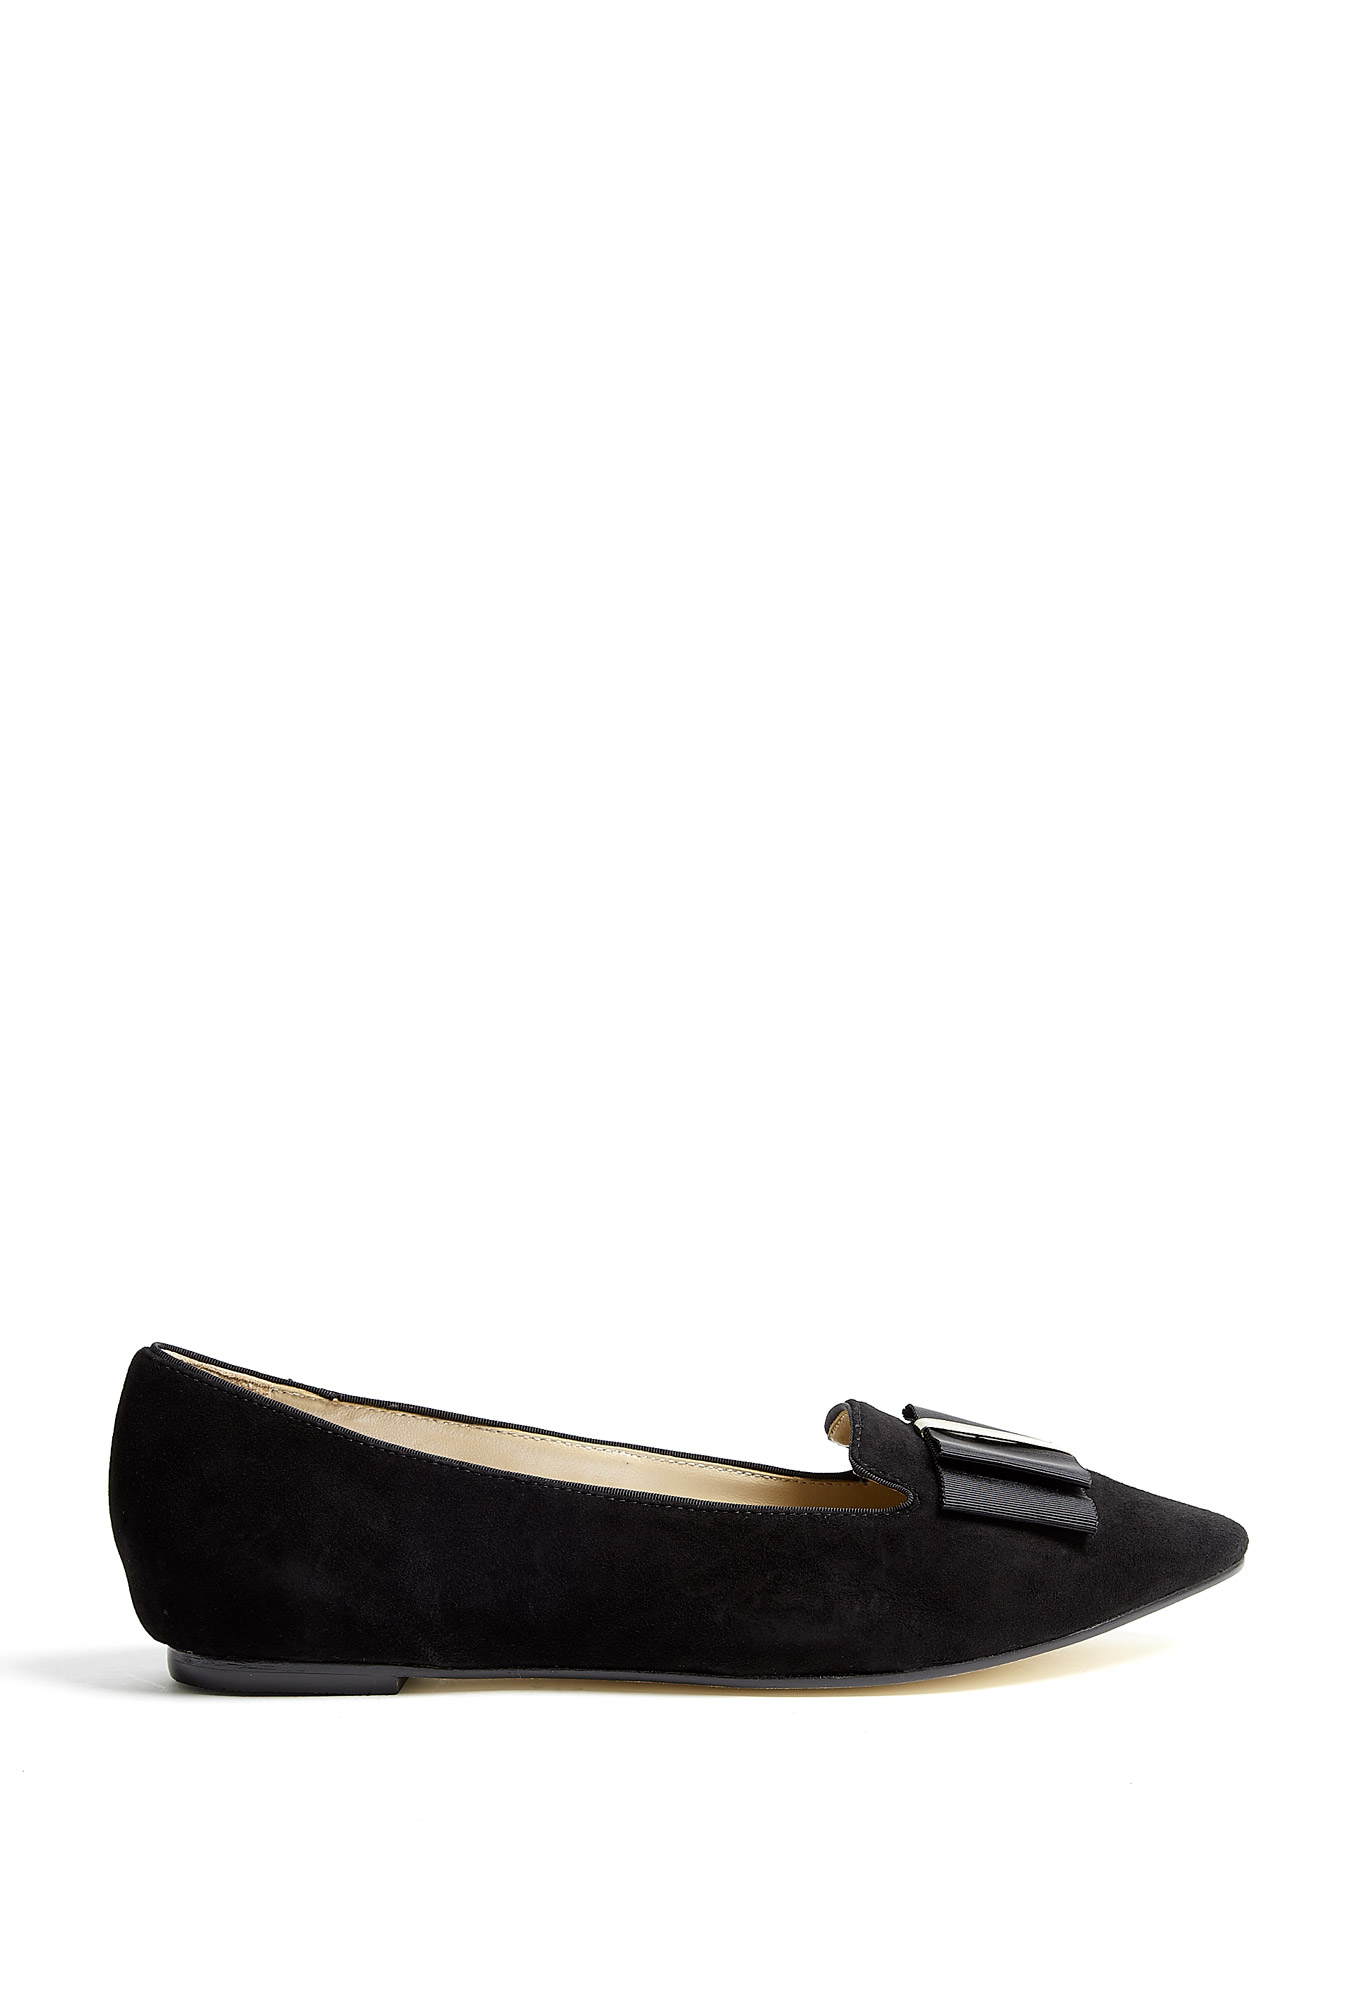 dkny trista suede tuxedo bow flat shoes in black lyst